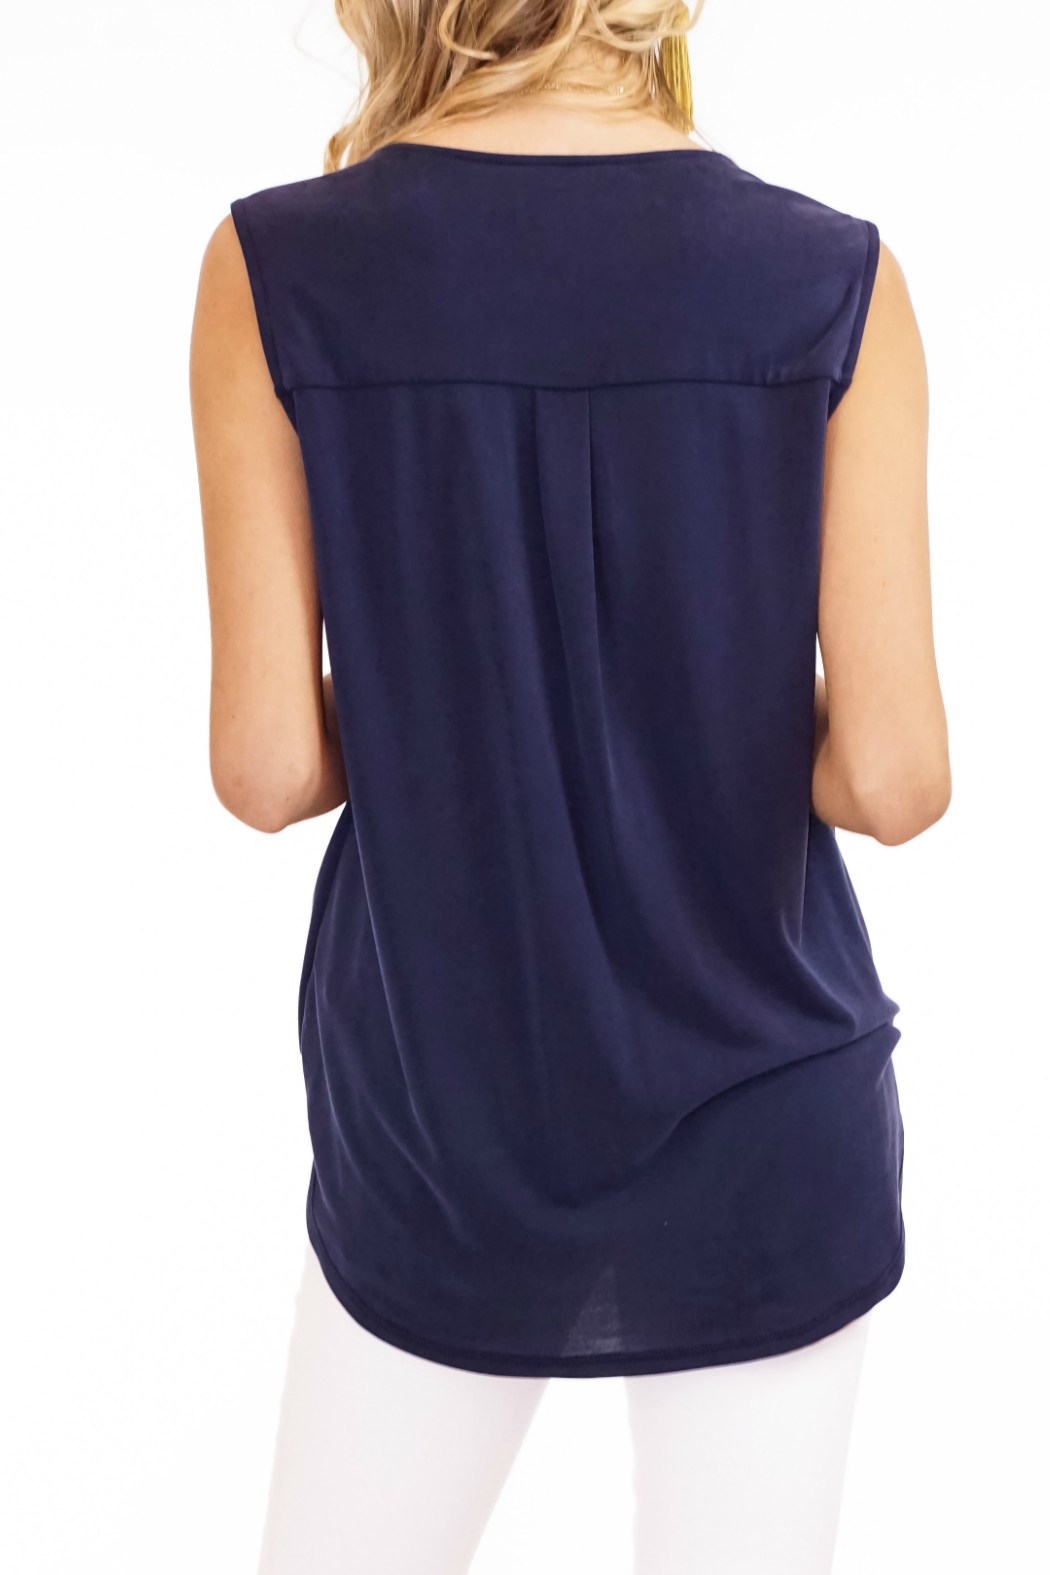 Veronica M Cupro Sleeveless Surplice Top - Side Cropped Image